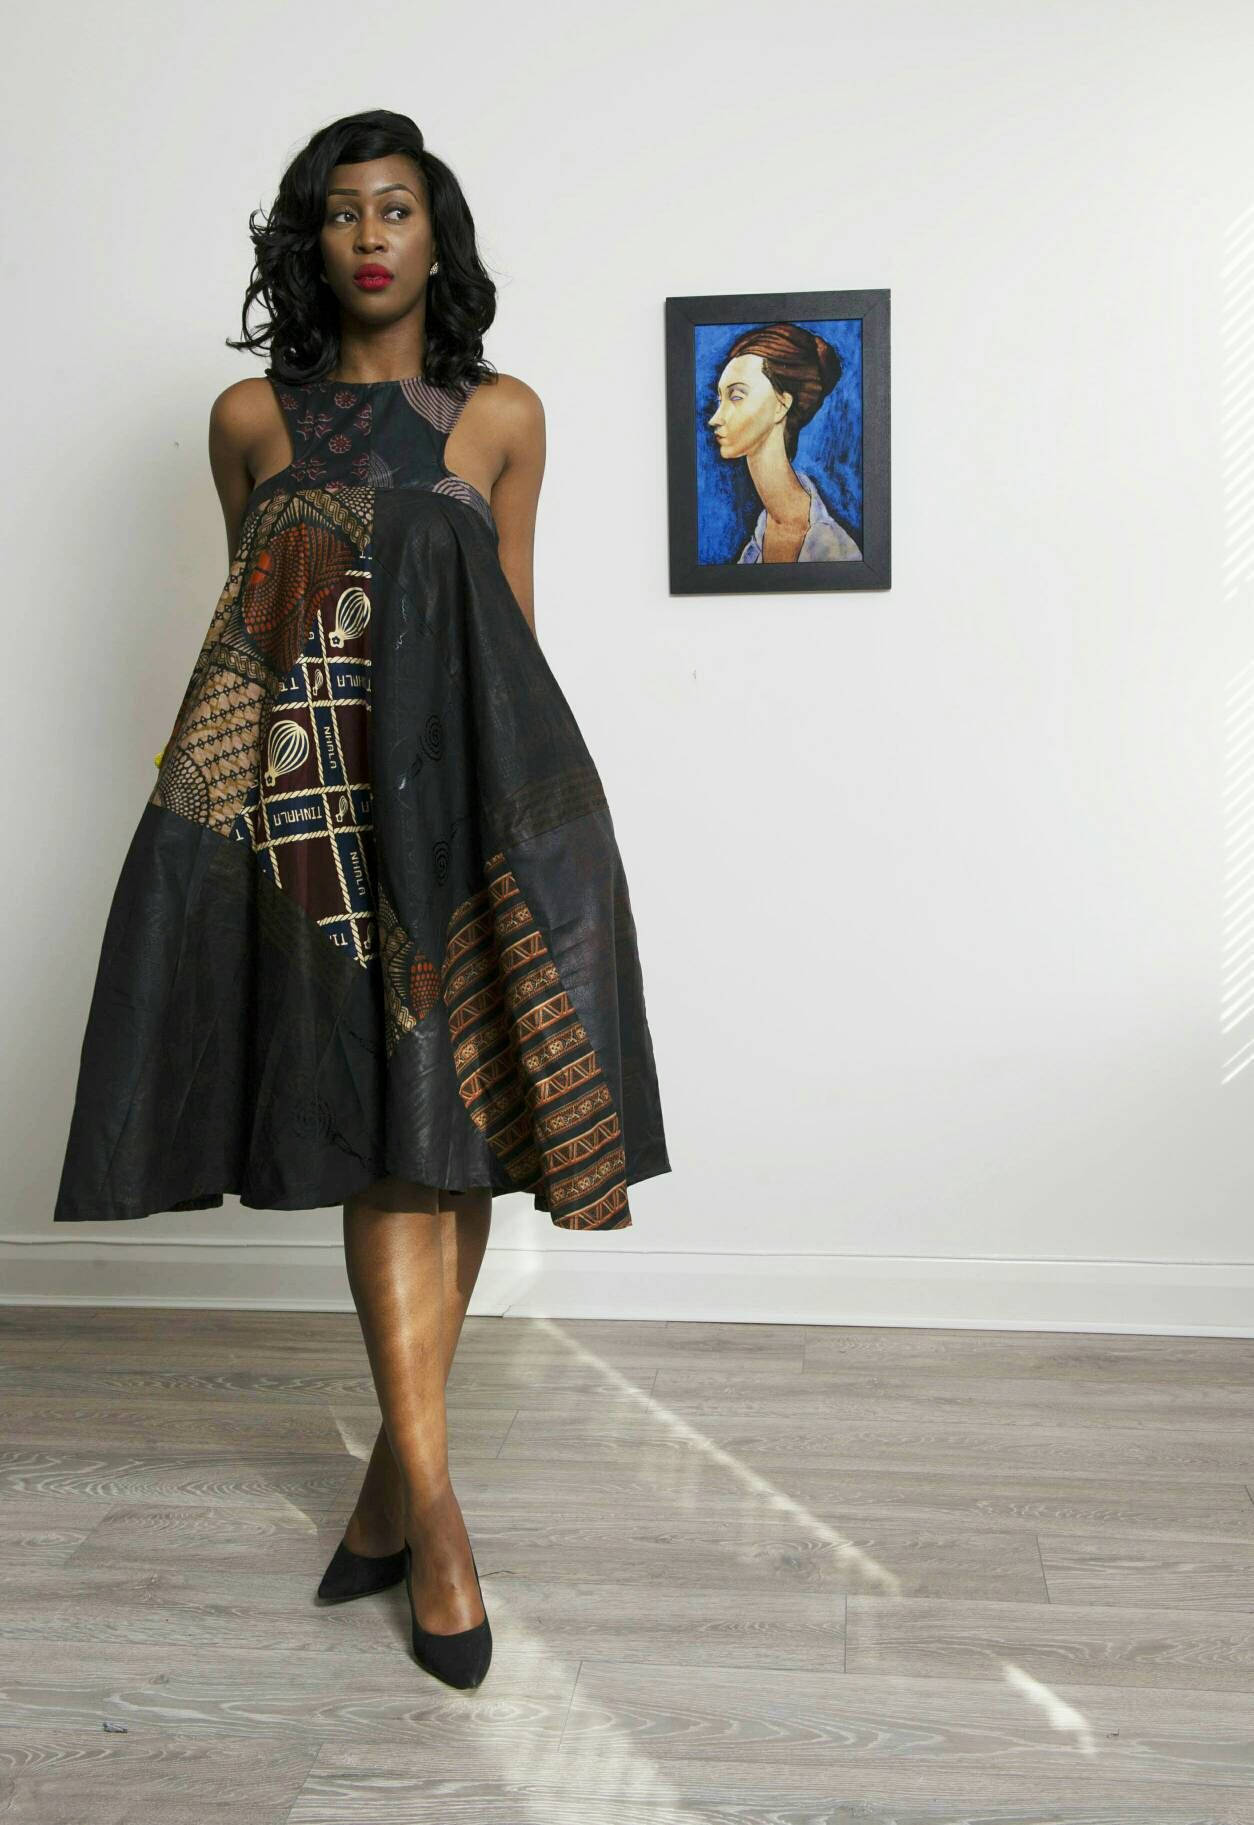 9412a59a0c7 Sosome women Ankara dress pattern available black mix option african mixed  prints. Easy to wear and perfect for any occasion beautifully constructed  womens ...